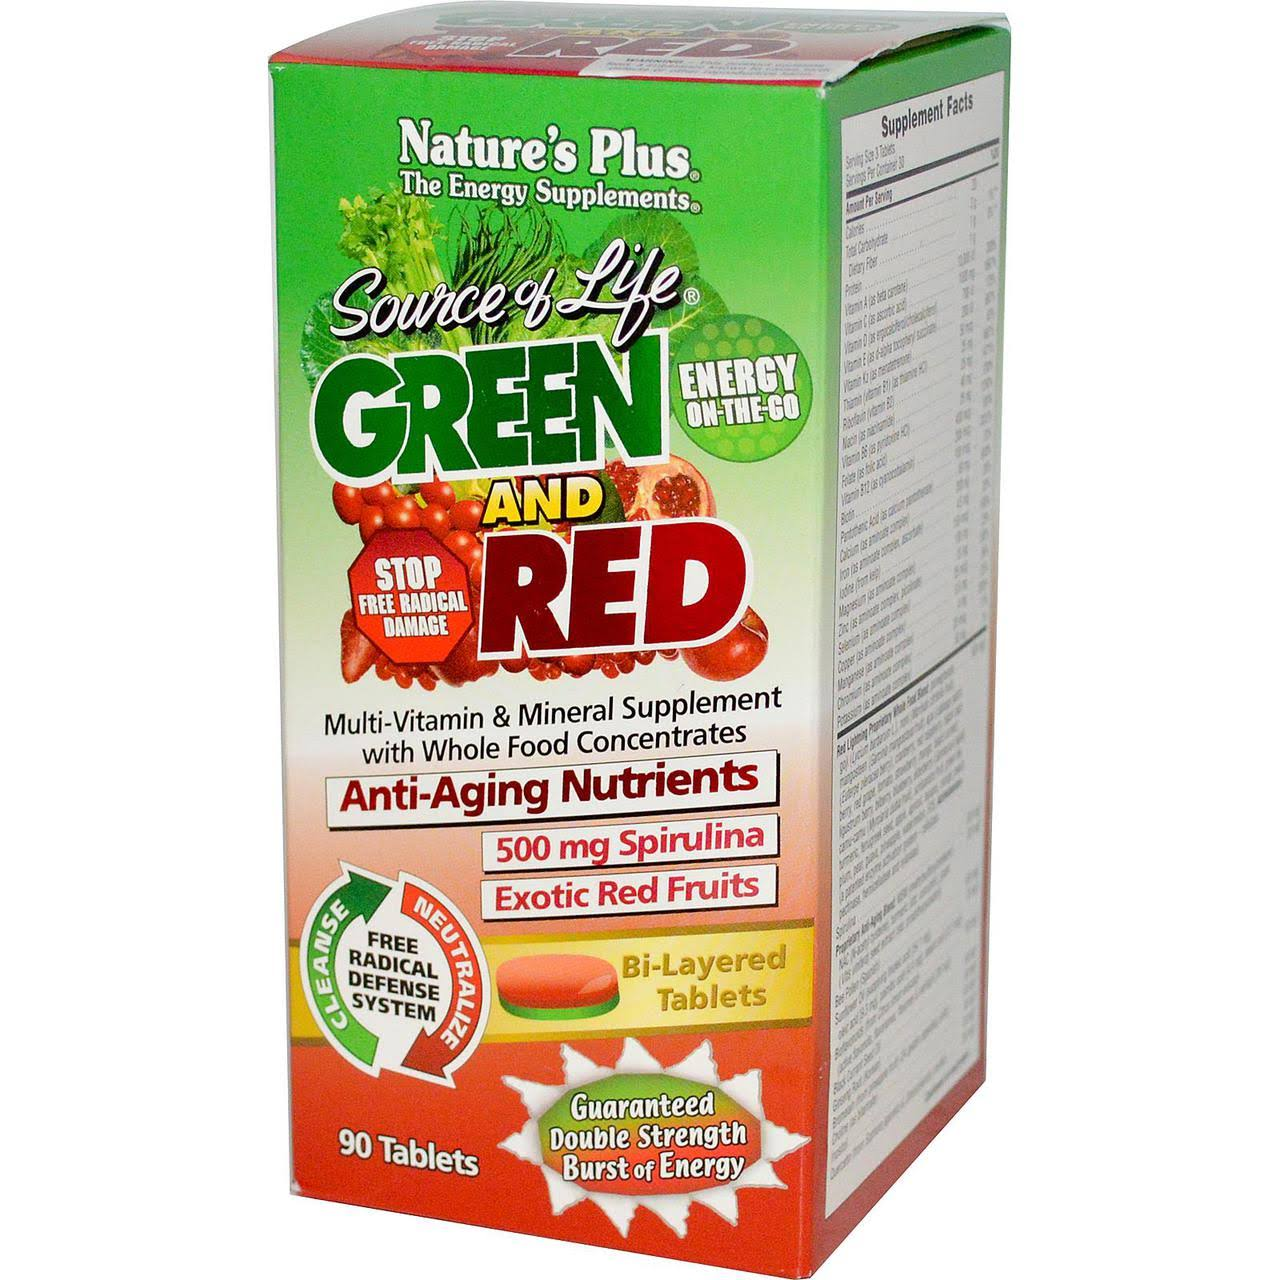 Nature's Plus Source Of Life Green & Red Multivitamin & Mineral Supplement - 90 Tablets